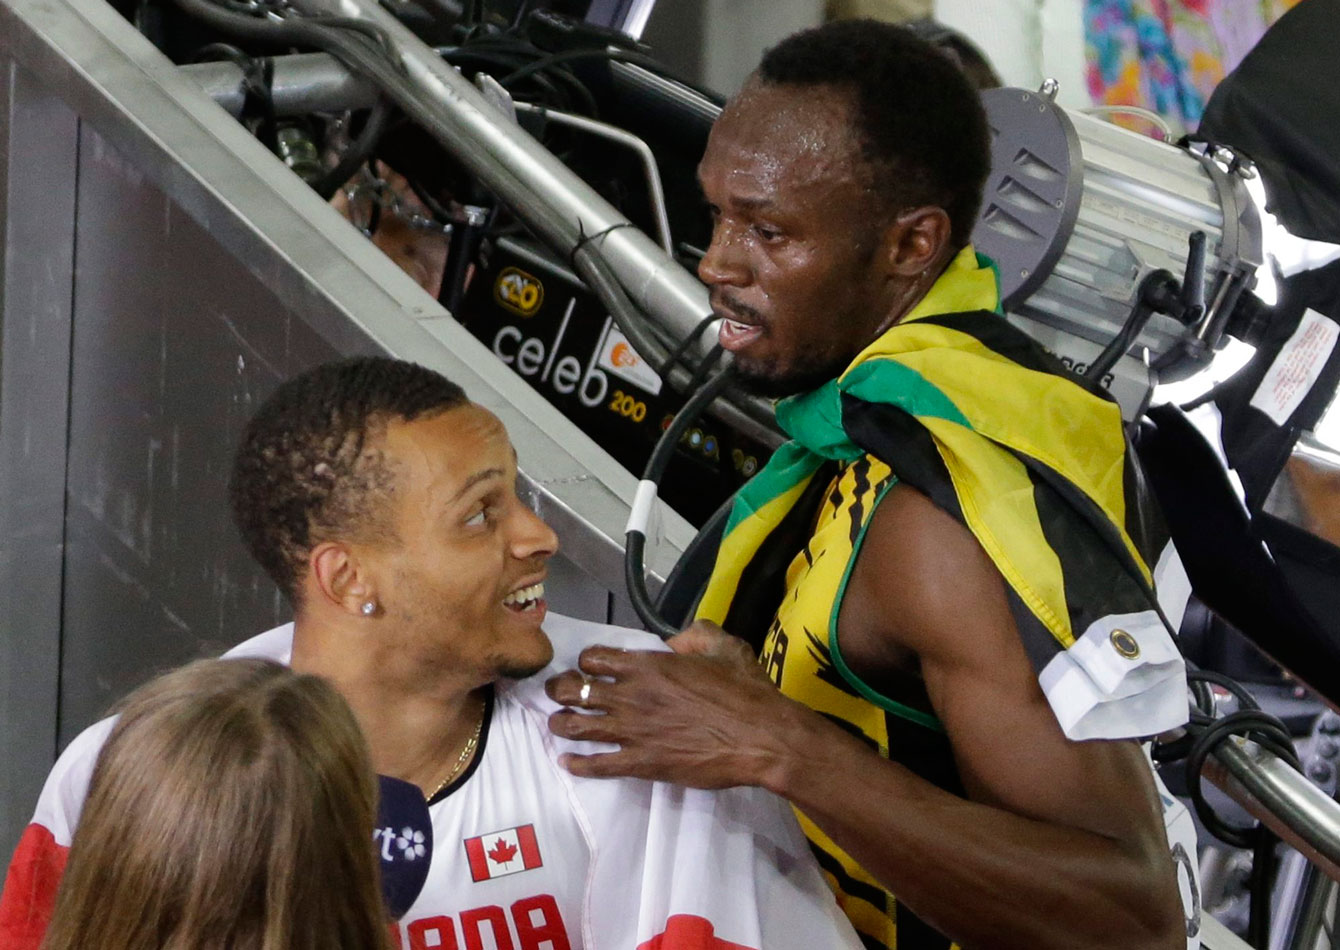 Usain Bolt and Andre De Grasse share a moment after both men won medals in the 100m at the 2015 IAAF World Championships on August 23, 2015 in Beijing, China.